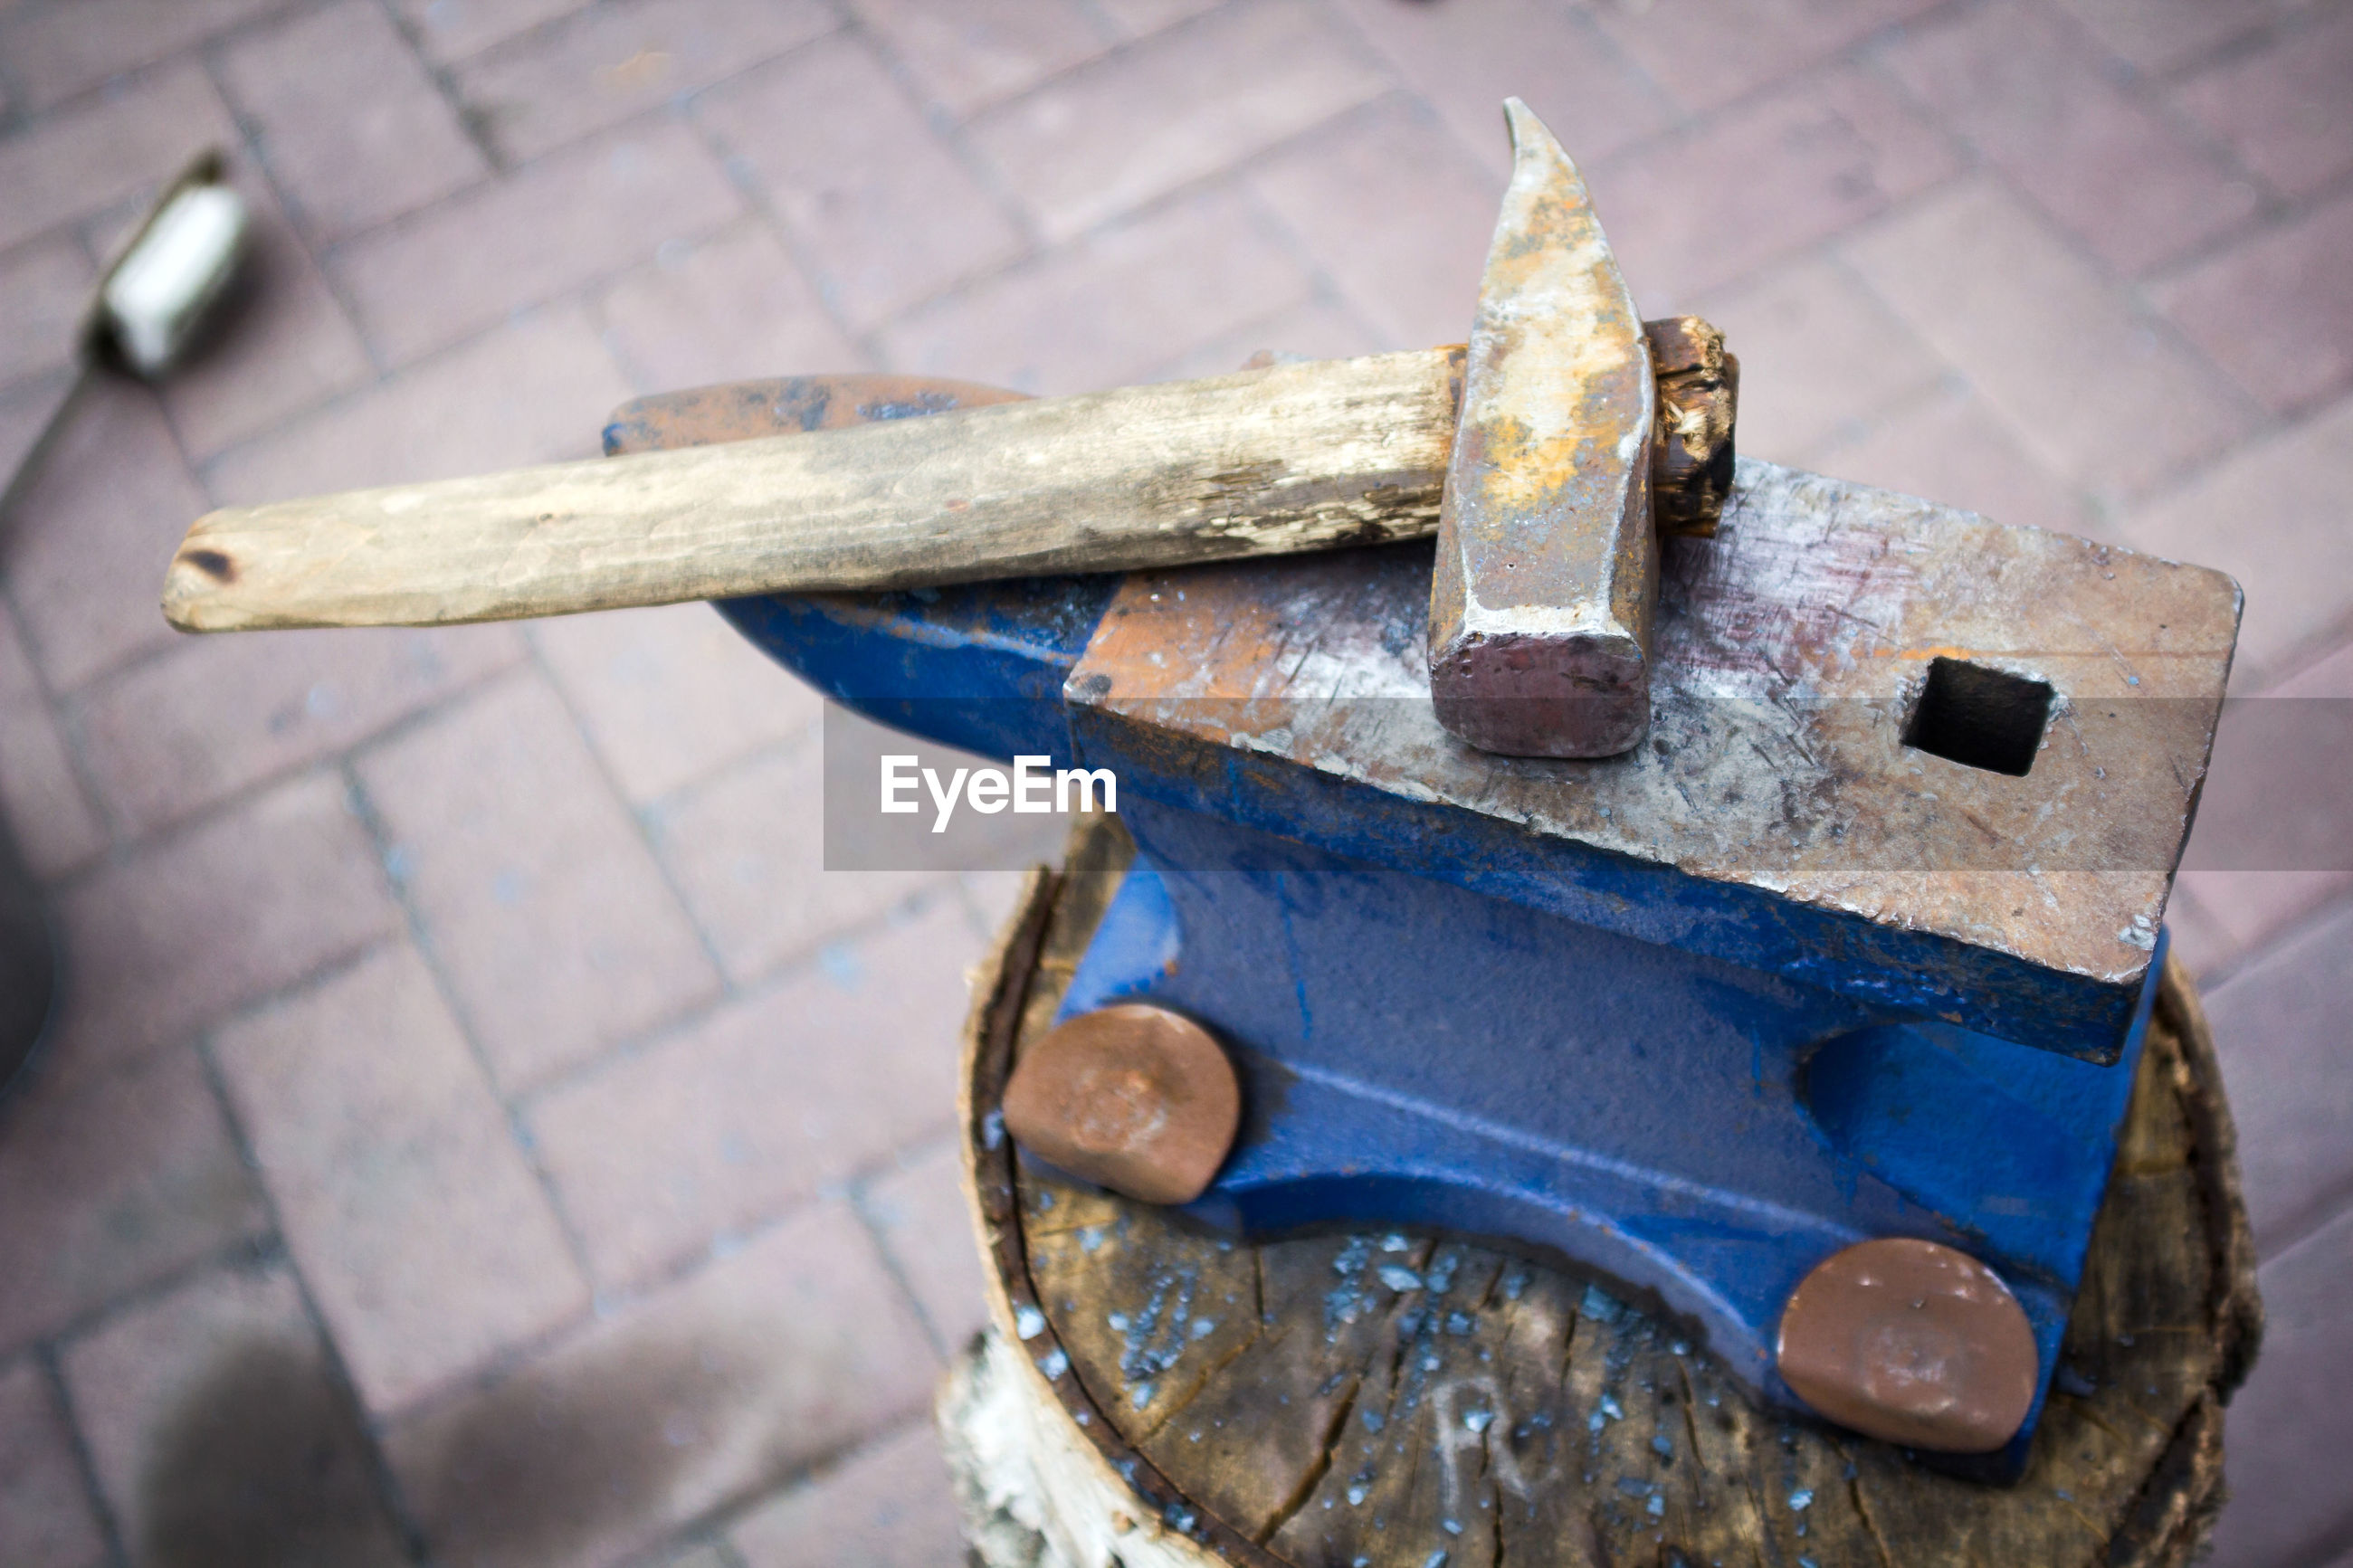 High angle view of hammer and metallic tool on tree stump